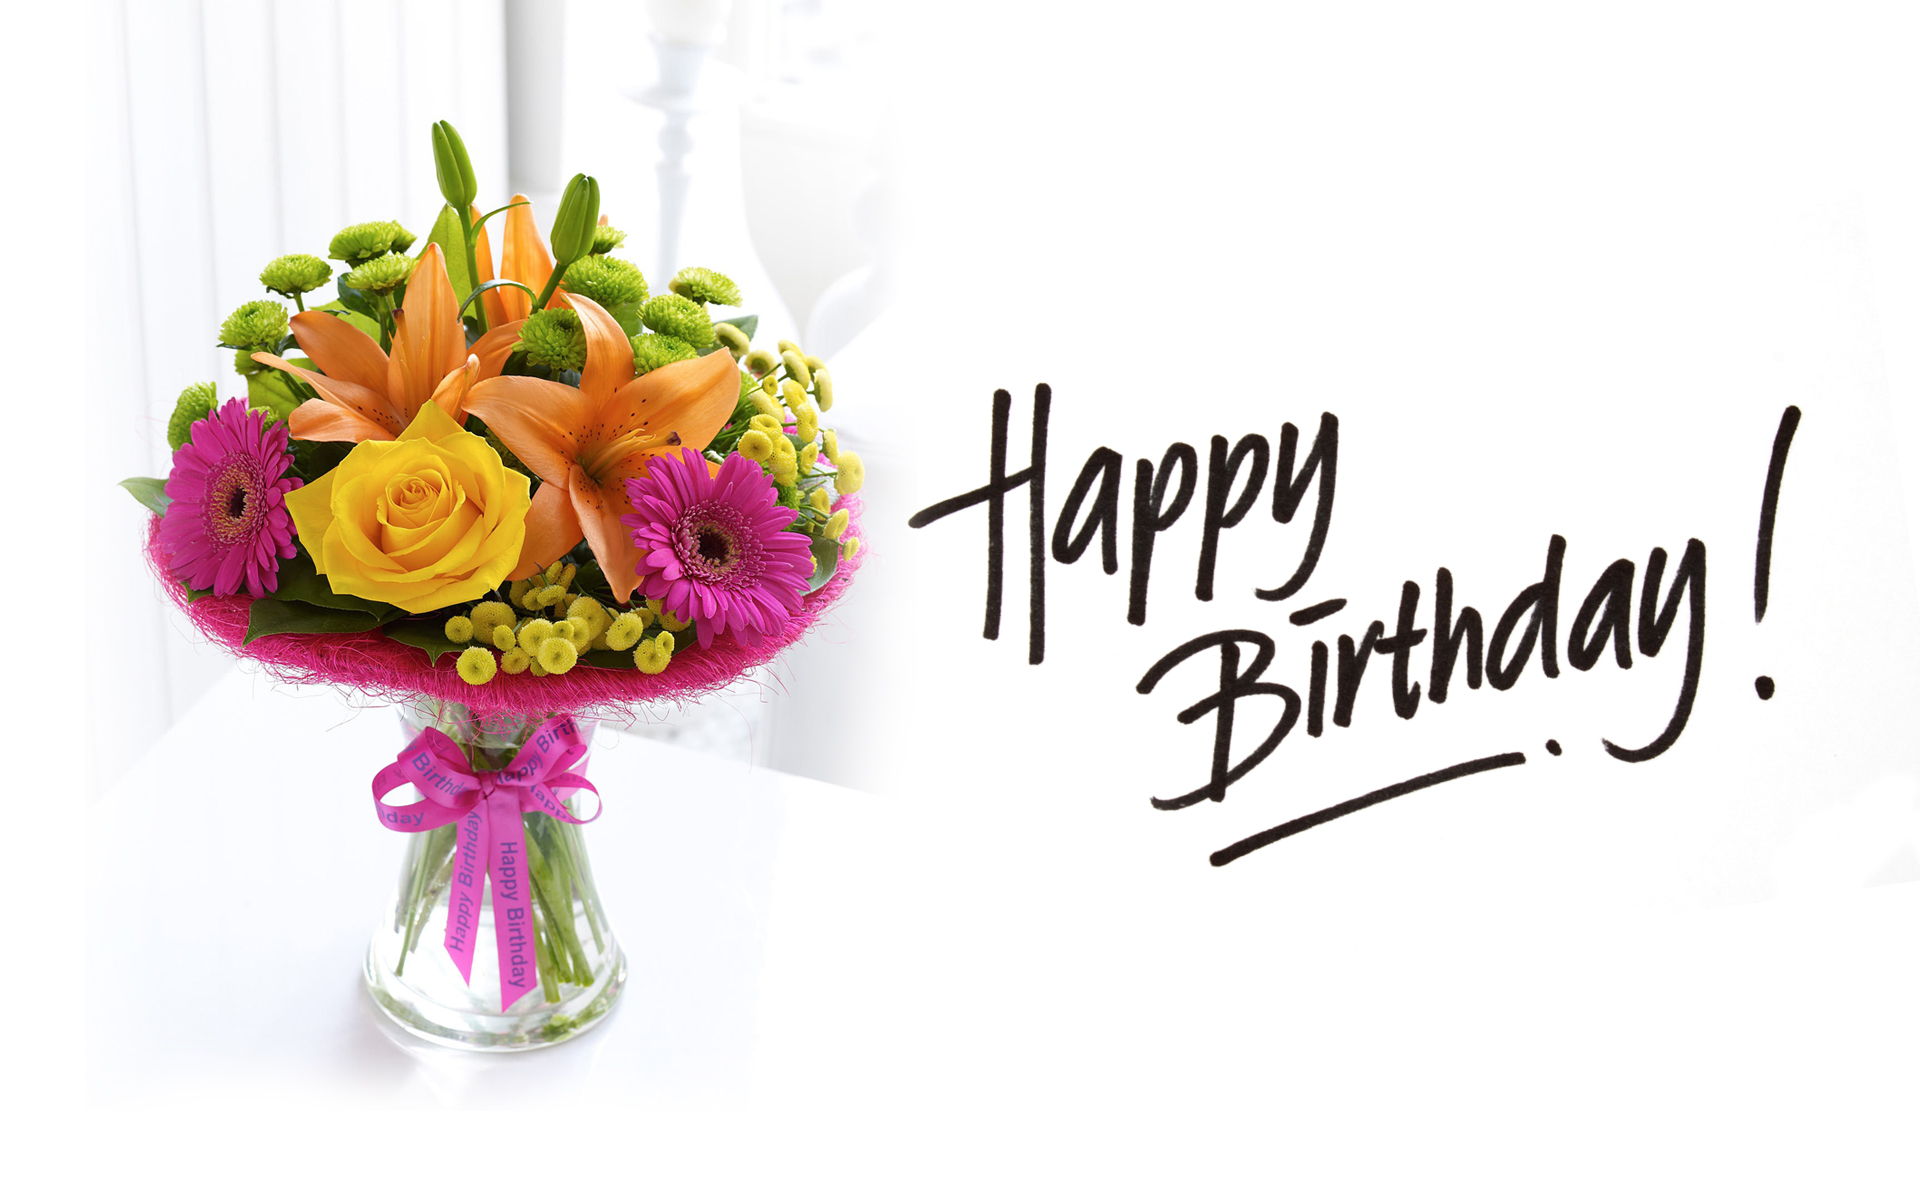 Happy birthday flowers images pictures and wallpapers happy birthday flowers for friends and family izmirmasajfo